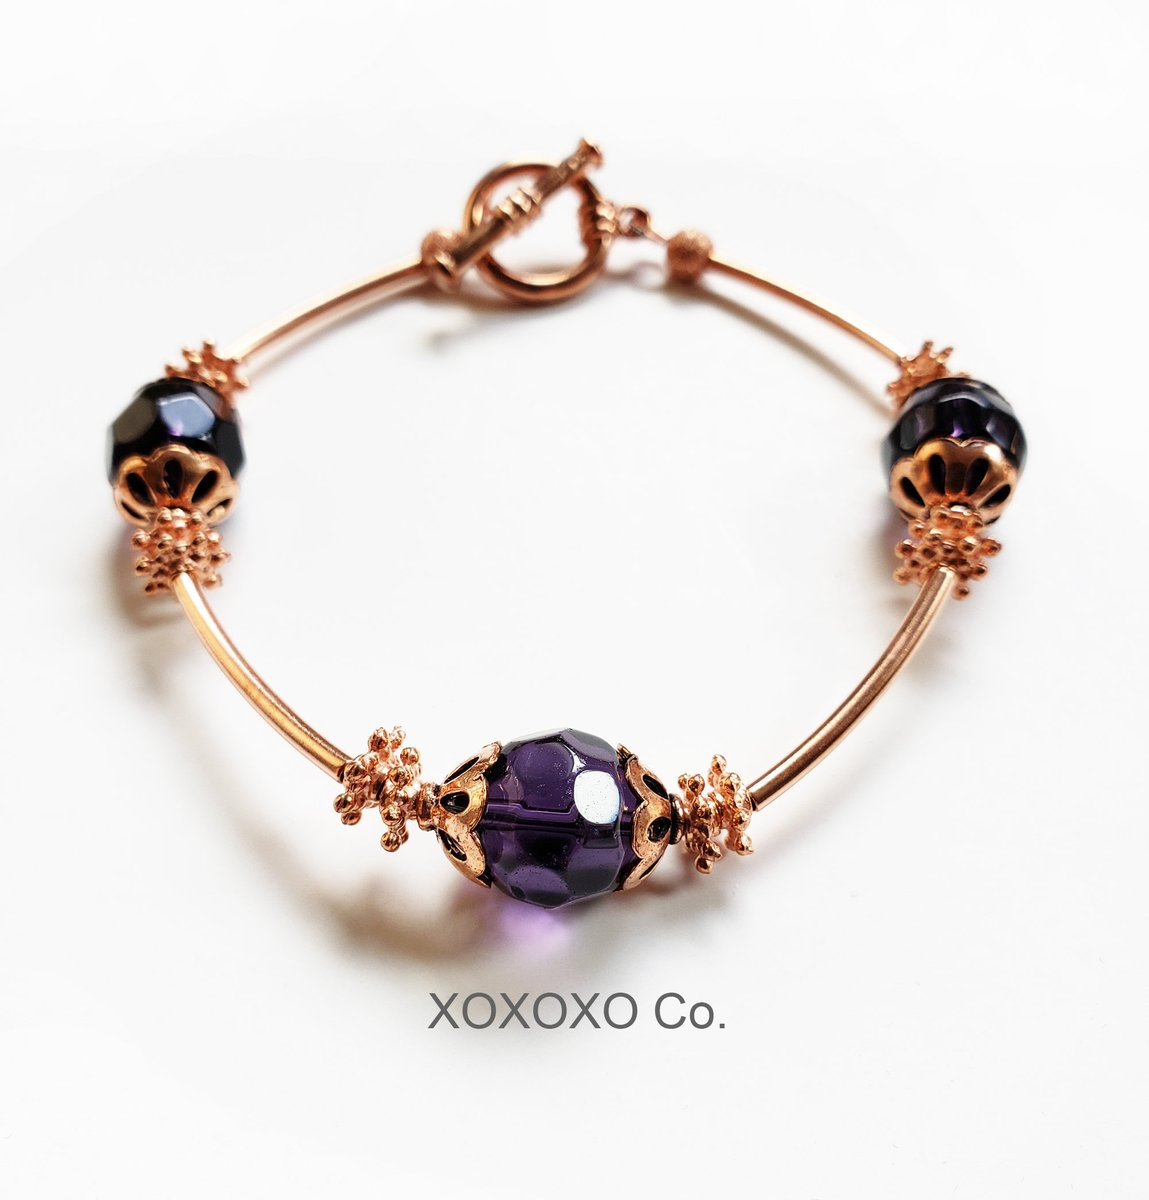 Copper Bracelet with Purple Beads and Toggle Clasp  #christmasgifts #giftsforher #fashion #shopsmall #Etsy #jewelryblogger #handmade #style #handmadejewelry